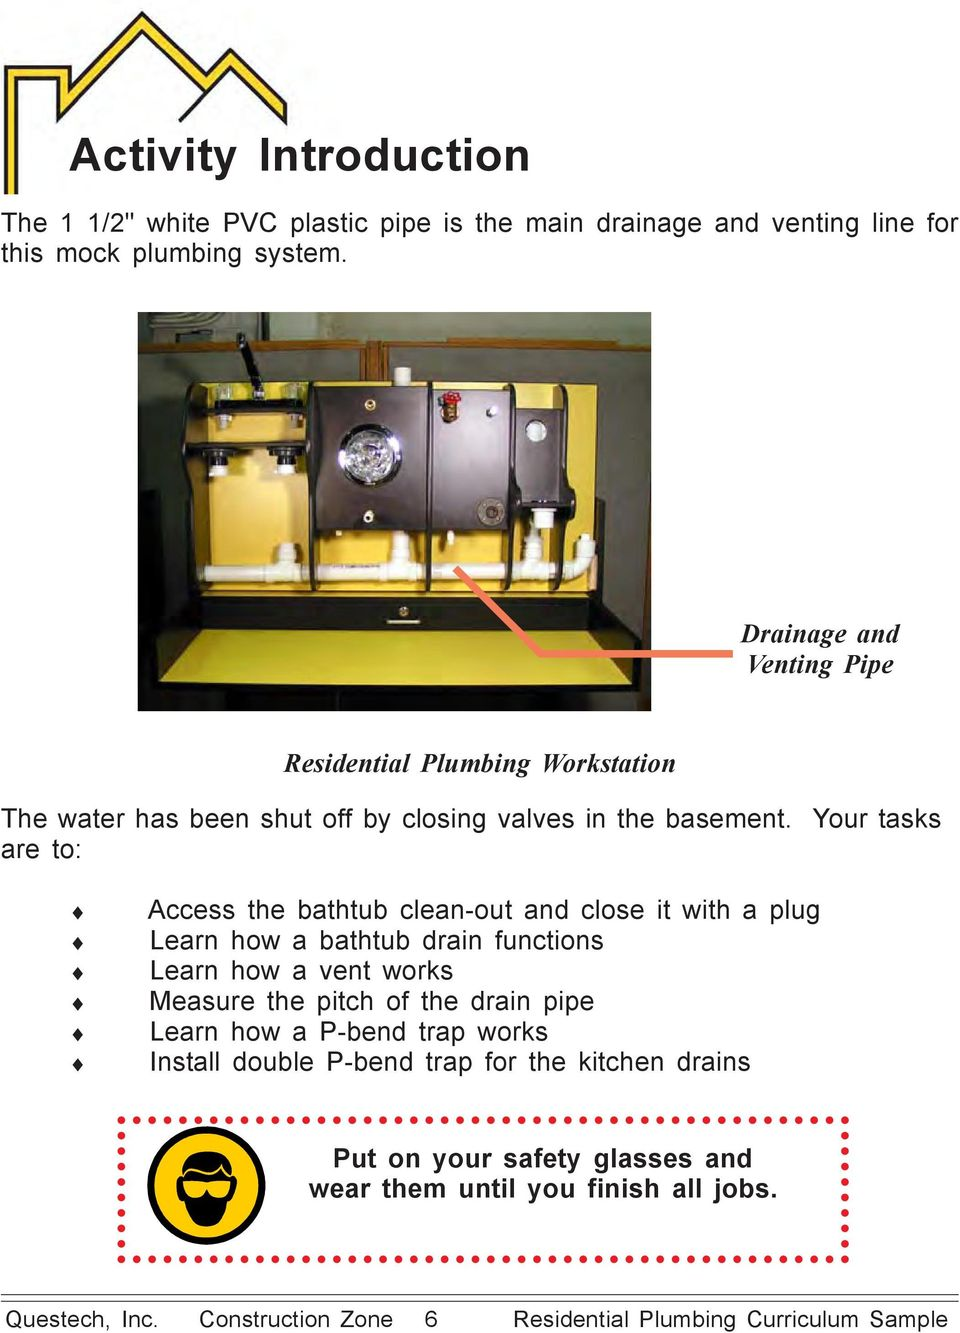 Your tasks are to: Access the bathtub clean-out and close it with a plug Learn how a bathtub drain functions Learn how a vent works Measure the pitch of the